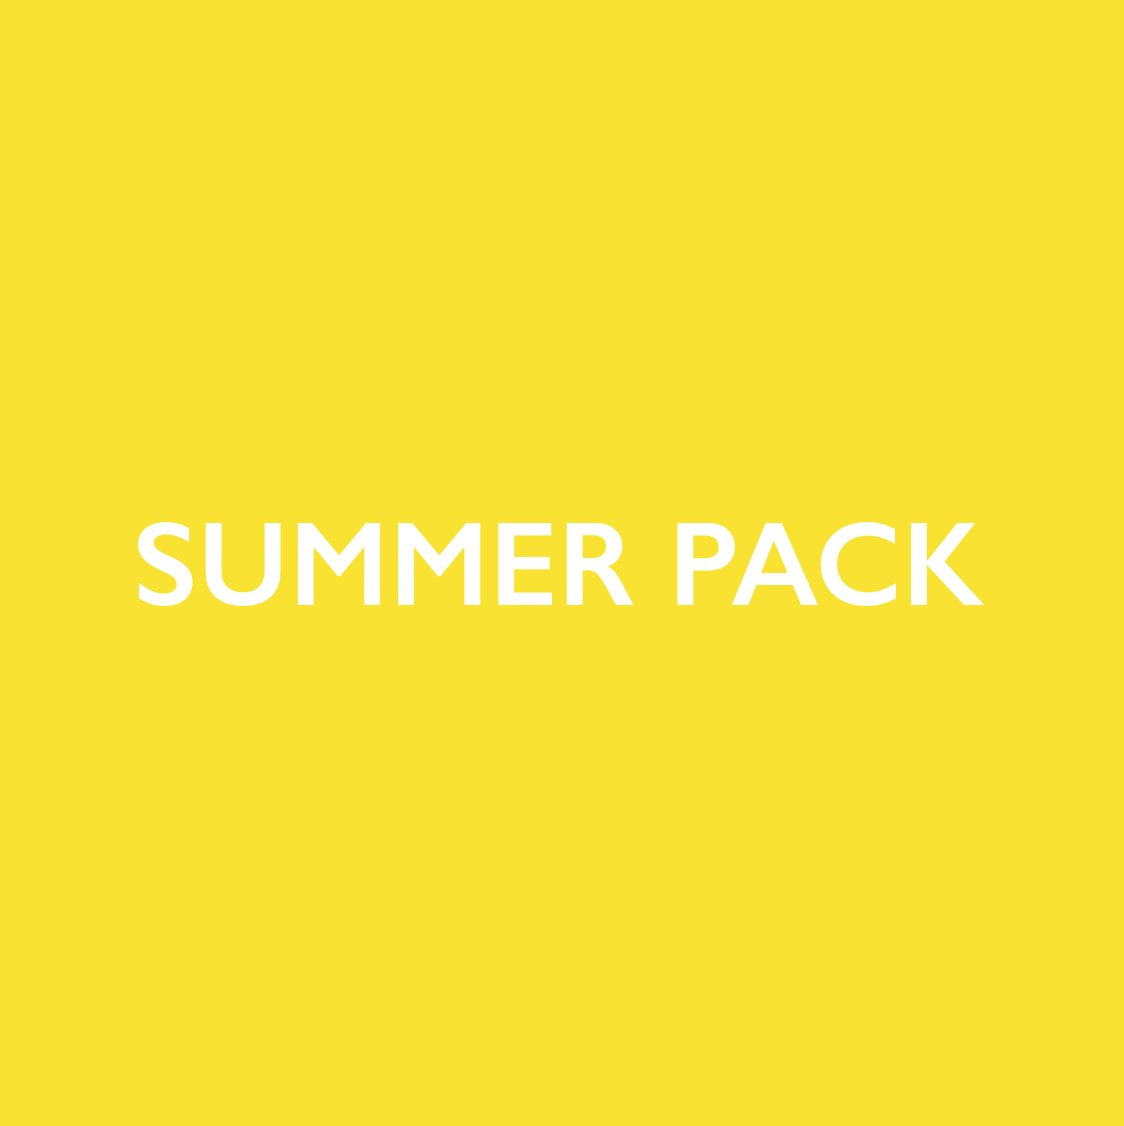 summer pack.   https://t.co/kpBkk31hFe https://t.co/7akhDVC65k